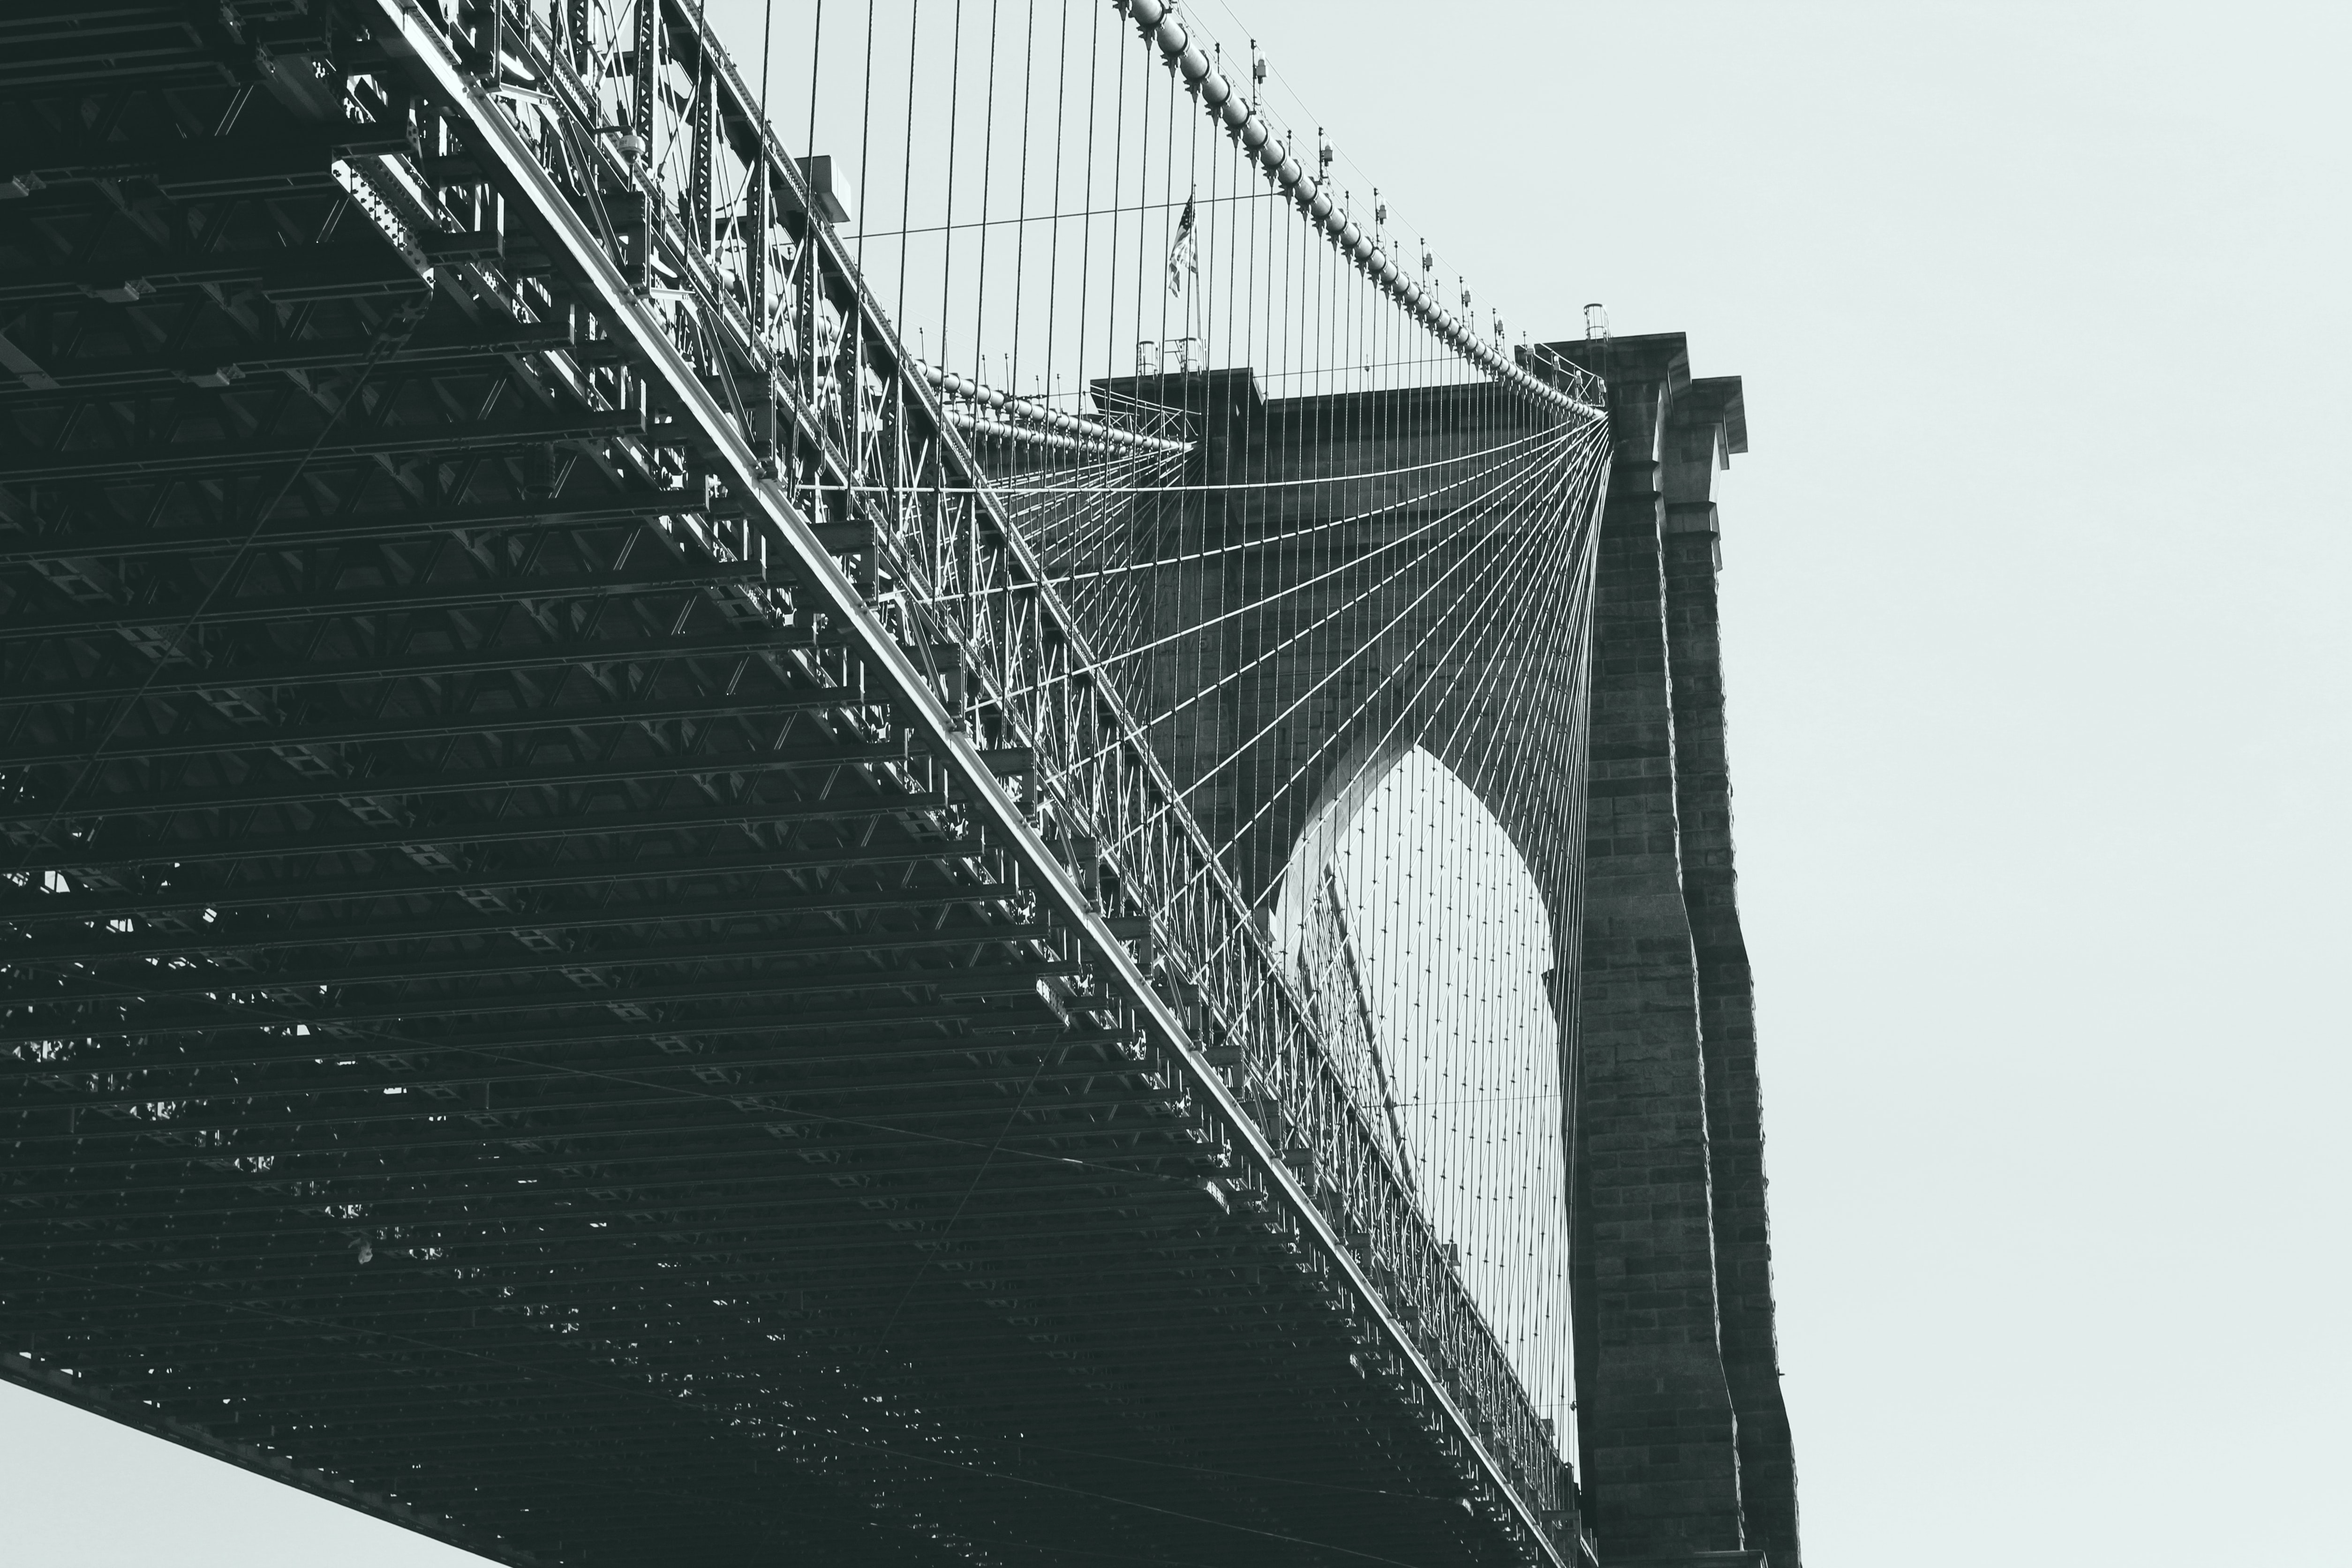 Black and white shot of Brooklyn Bridge from below with clear sky